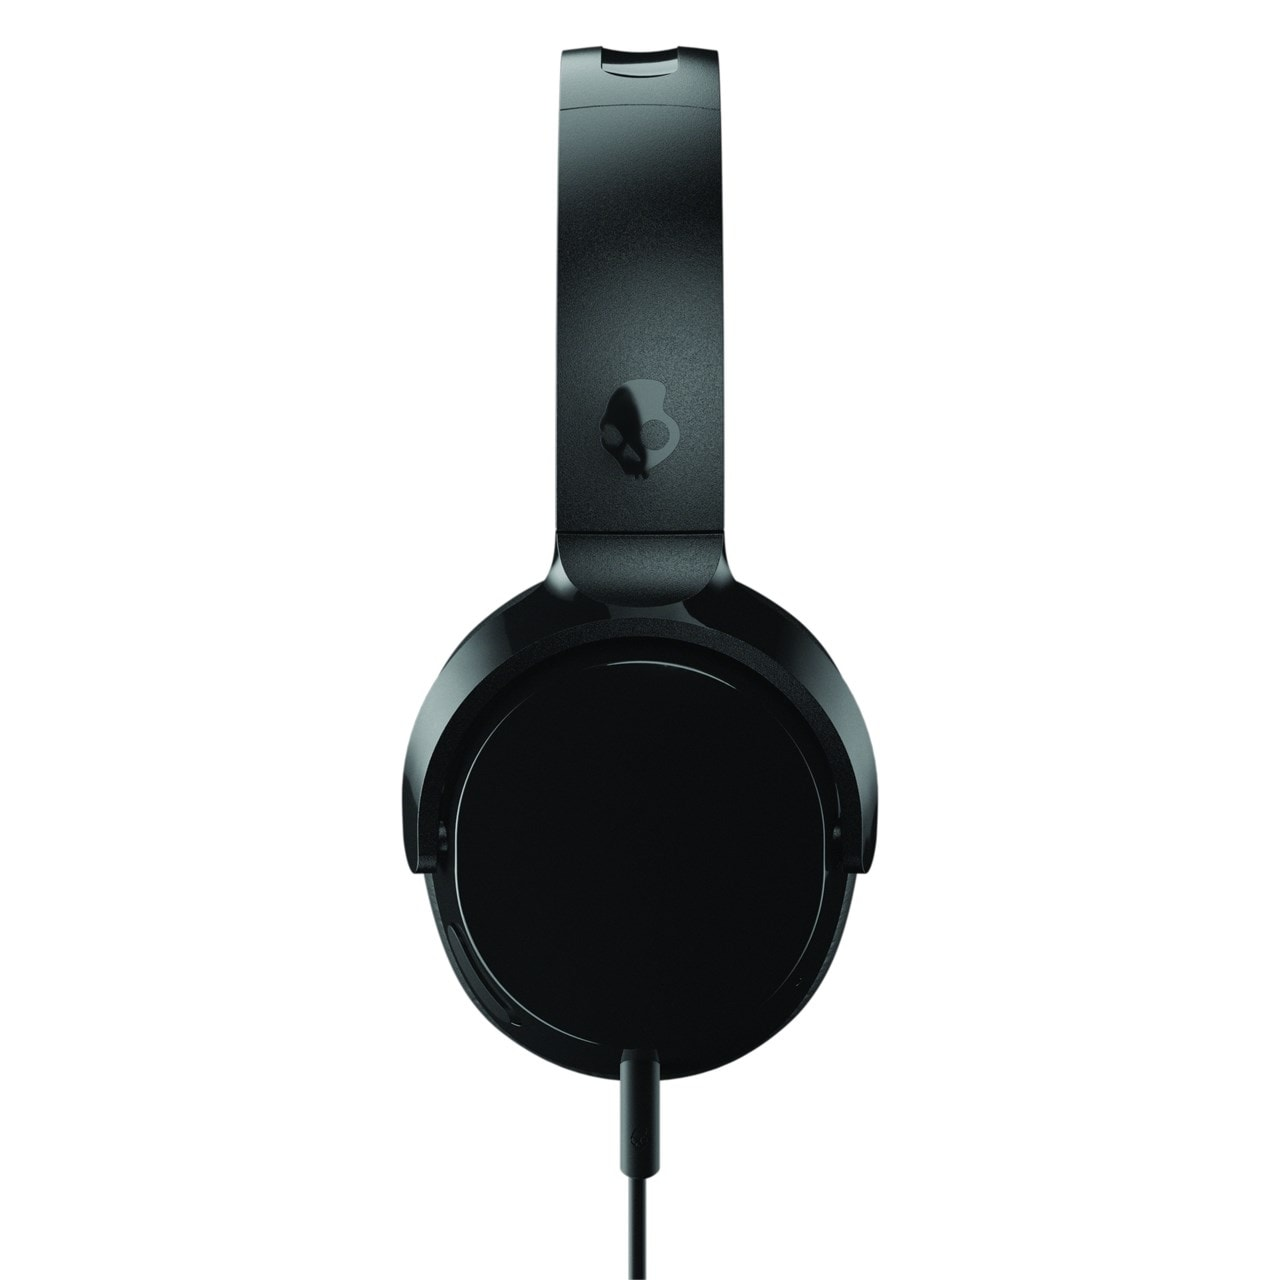 Skullcandy Riff Black Headphones - 3